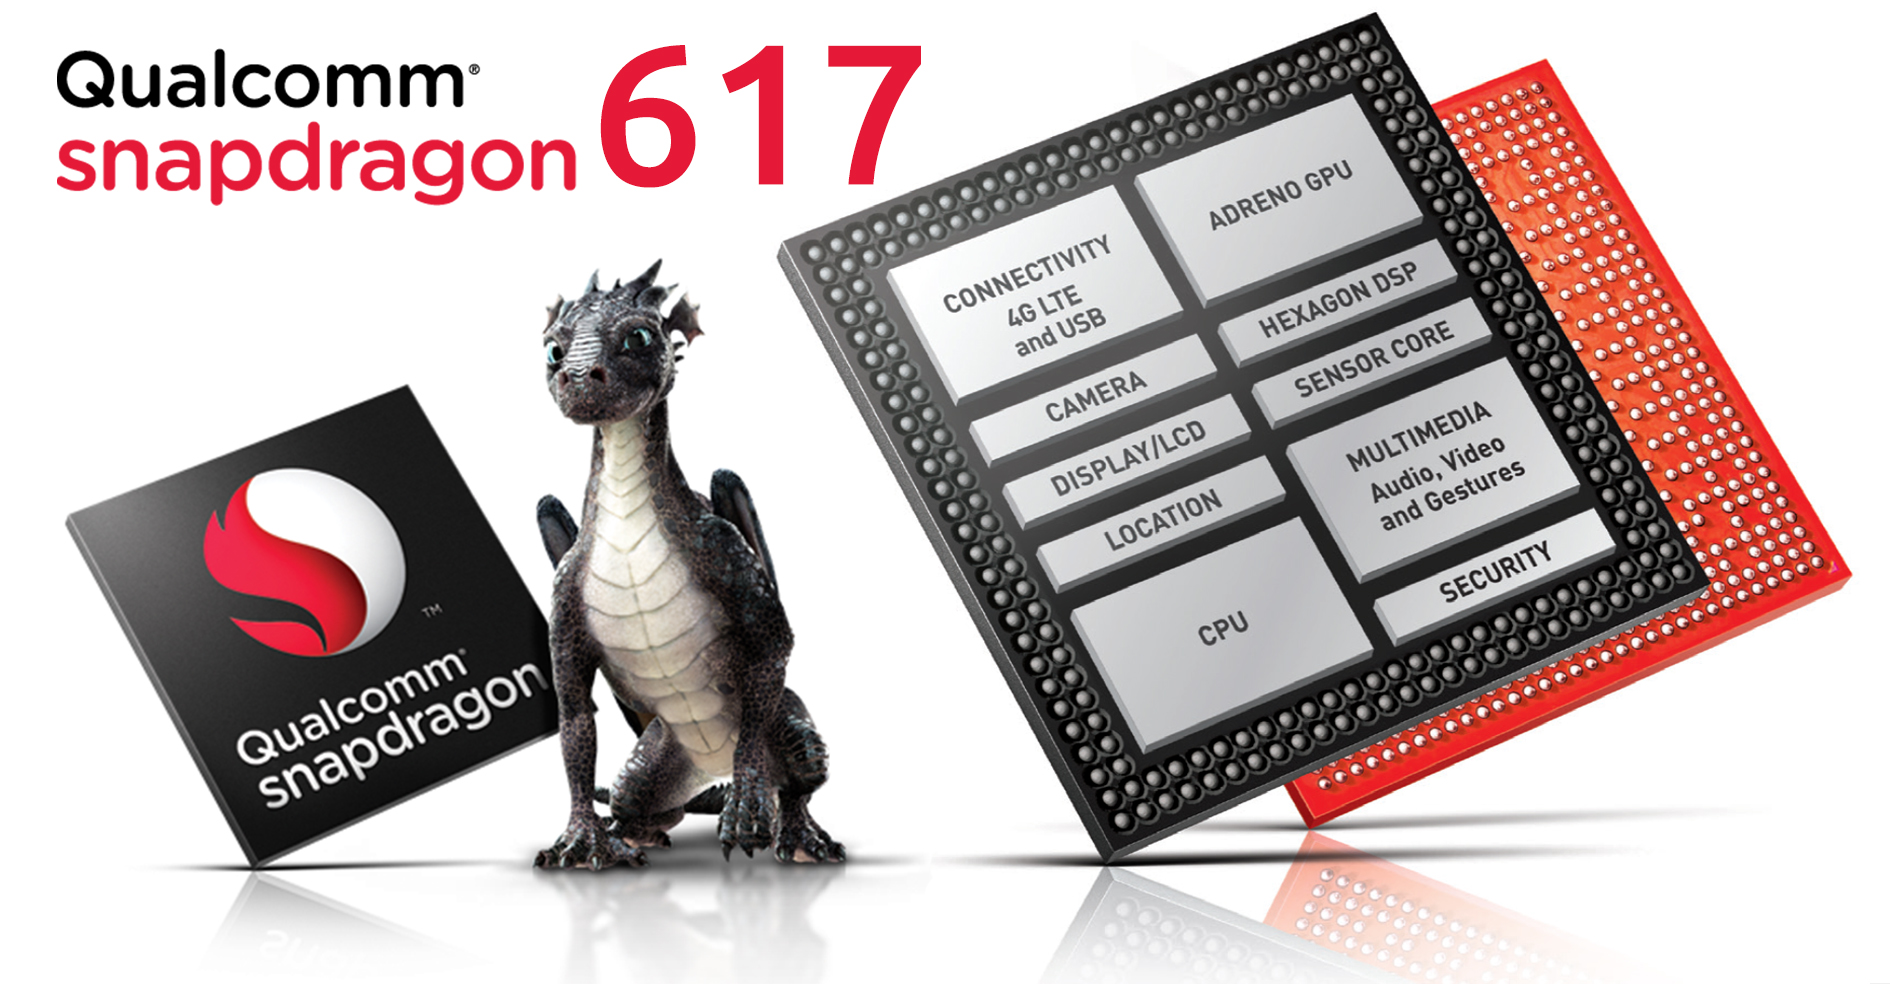 Qualcomm-SnapDragon-617